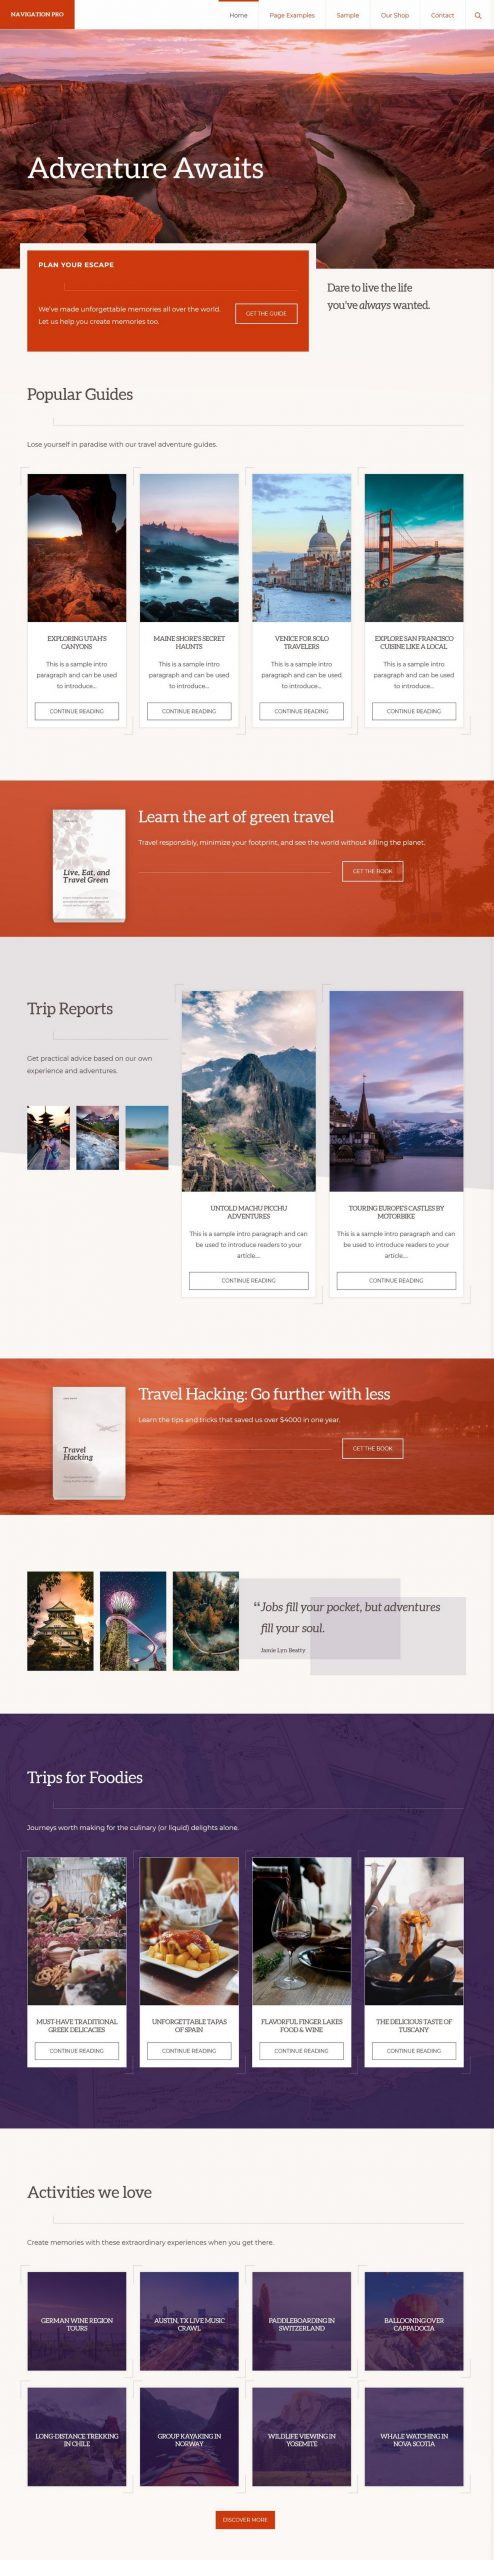 navigation pro studiopress wordpress theme 01 scaled - Navigation PRO WordPress Theme